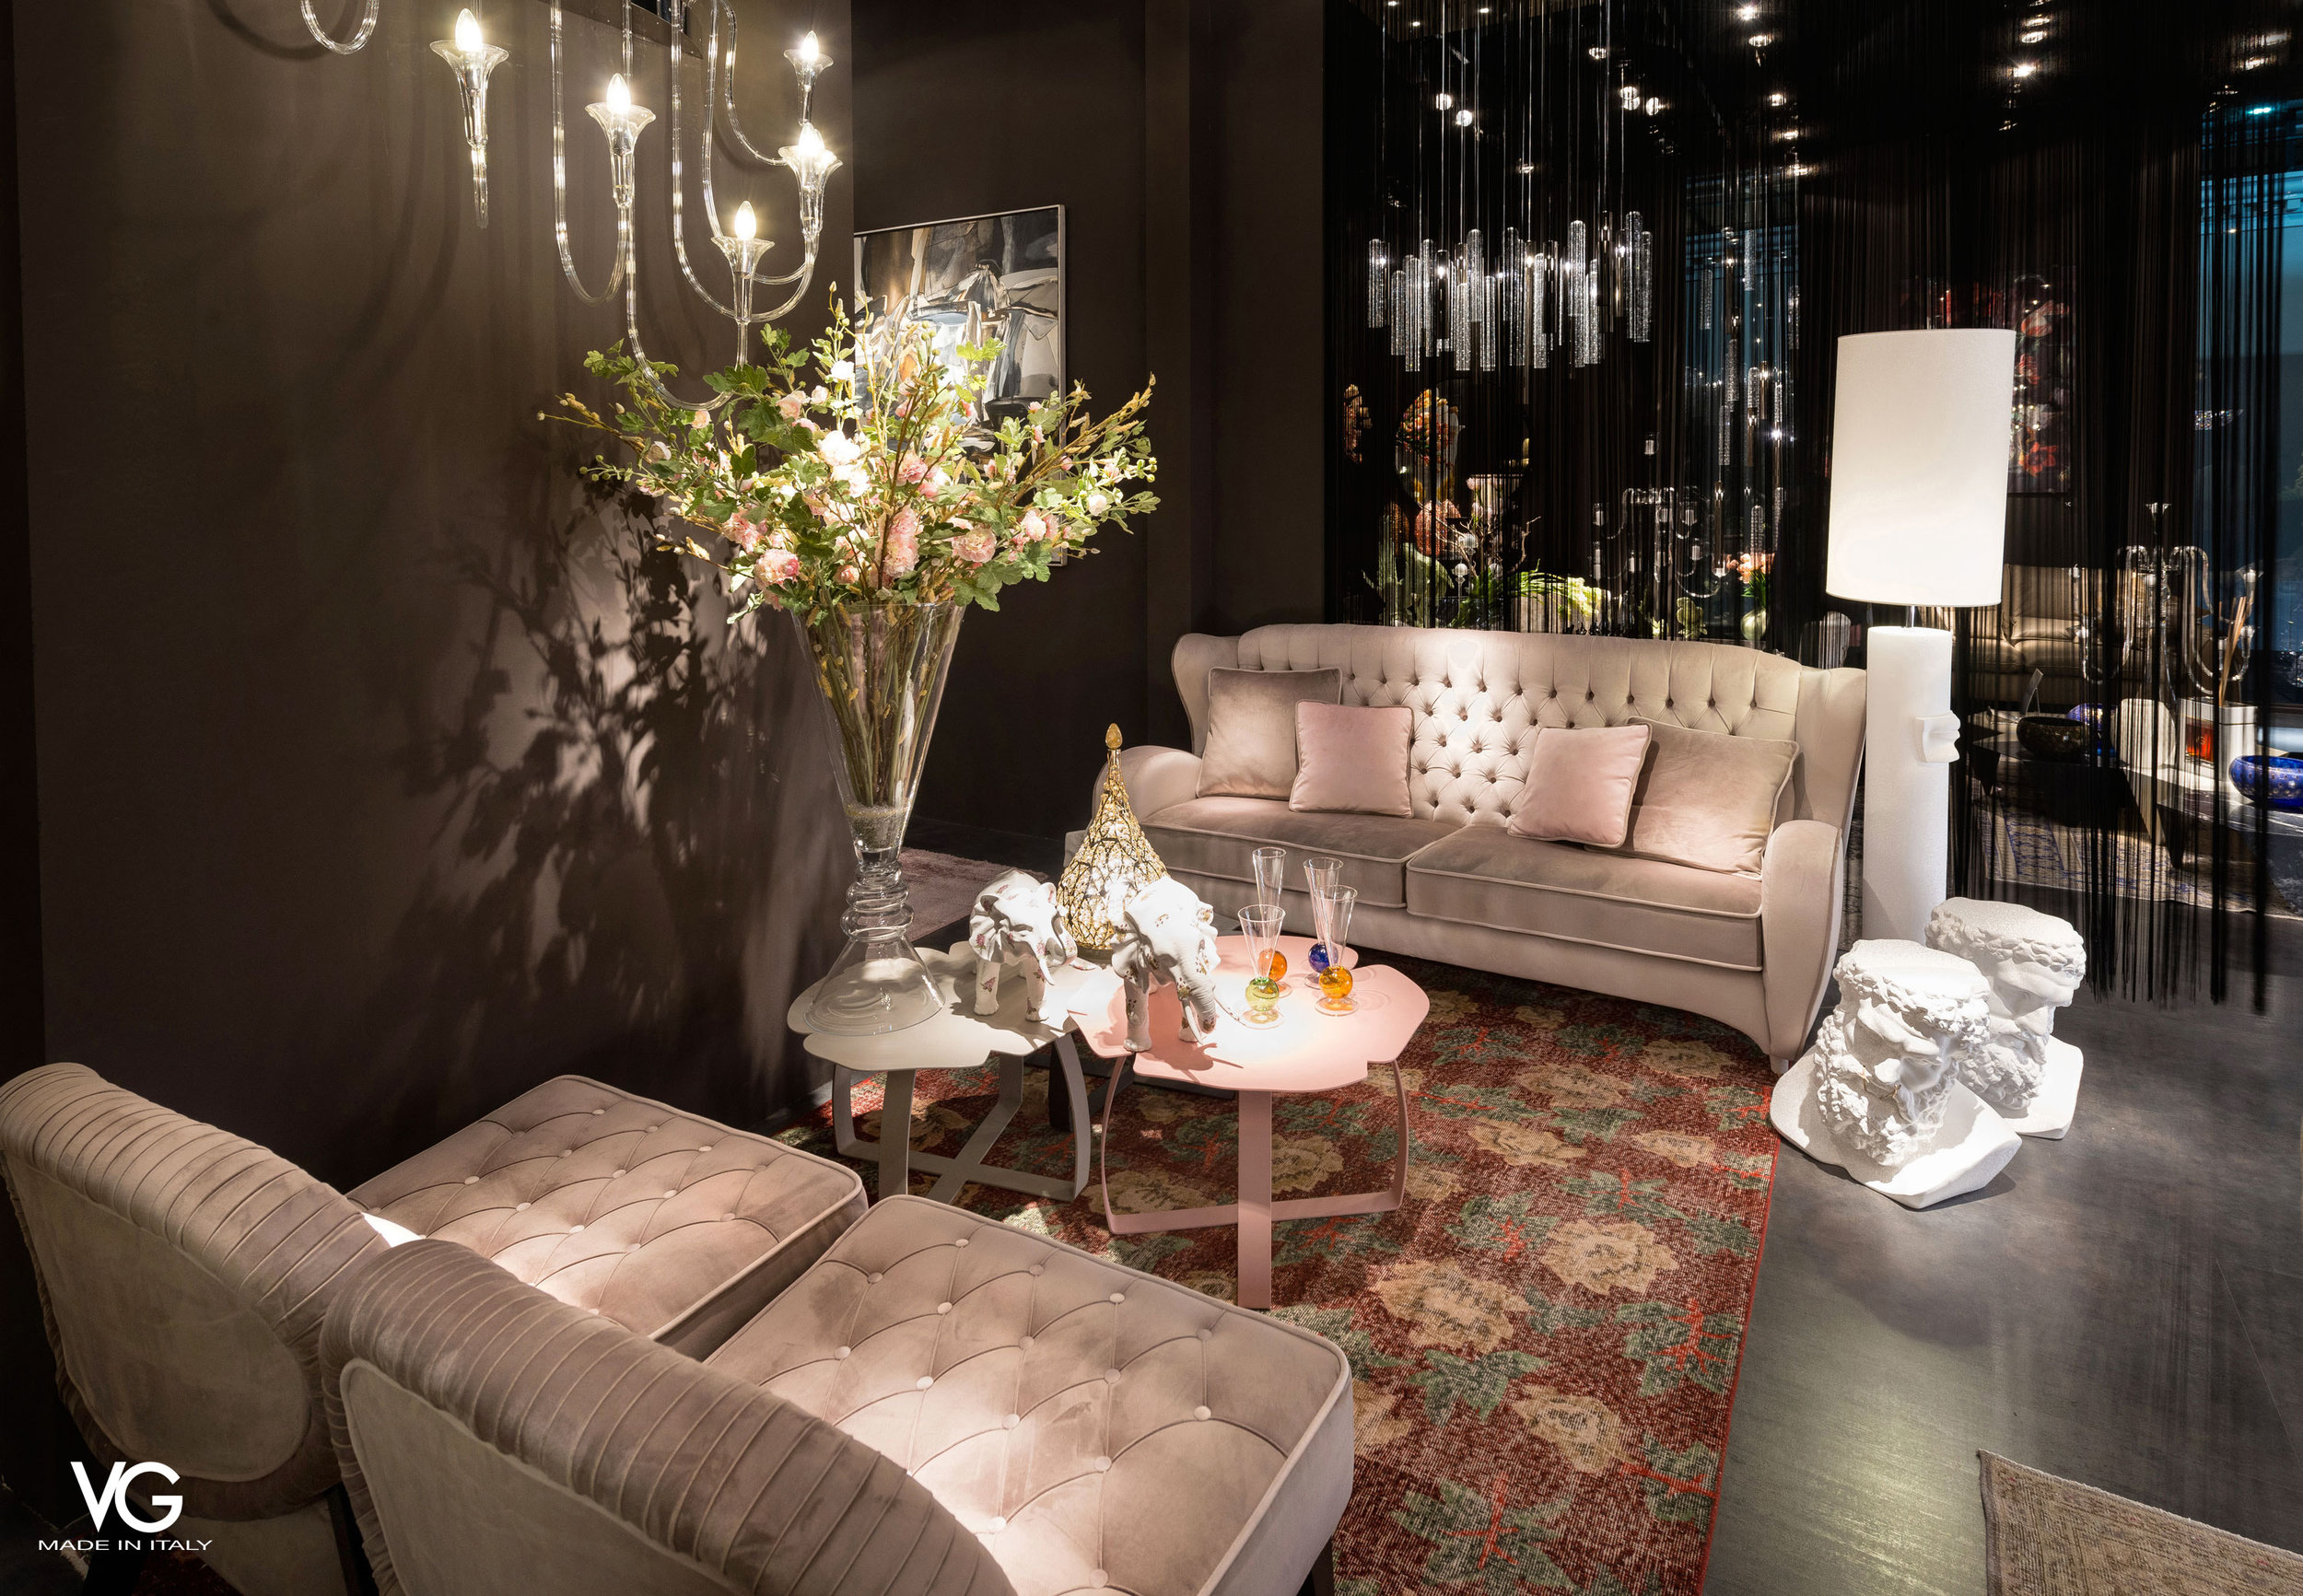 VG New Trend - seating area during the Salone del Mobile in Milan - Masha Shapiro Agency.jpg